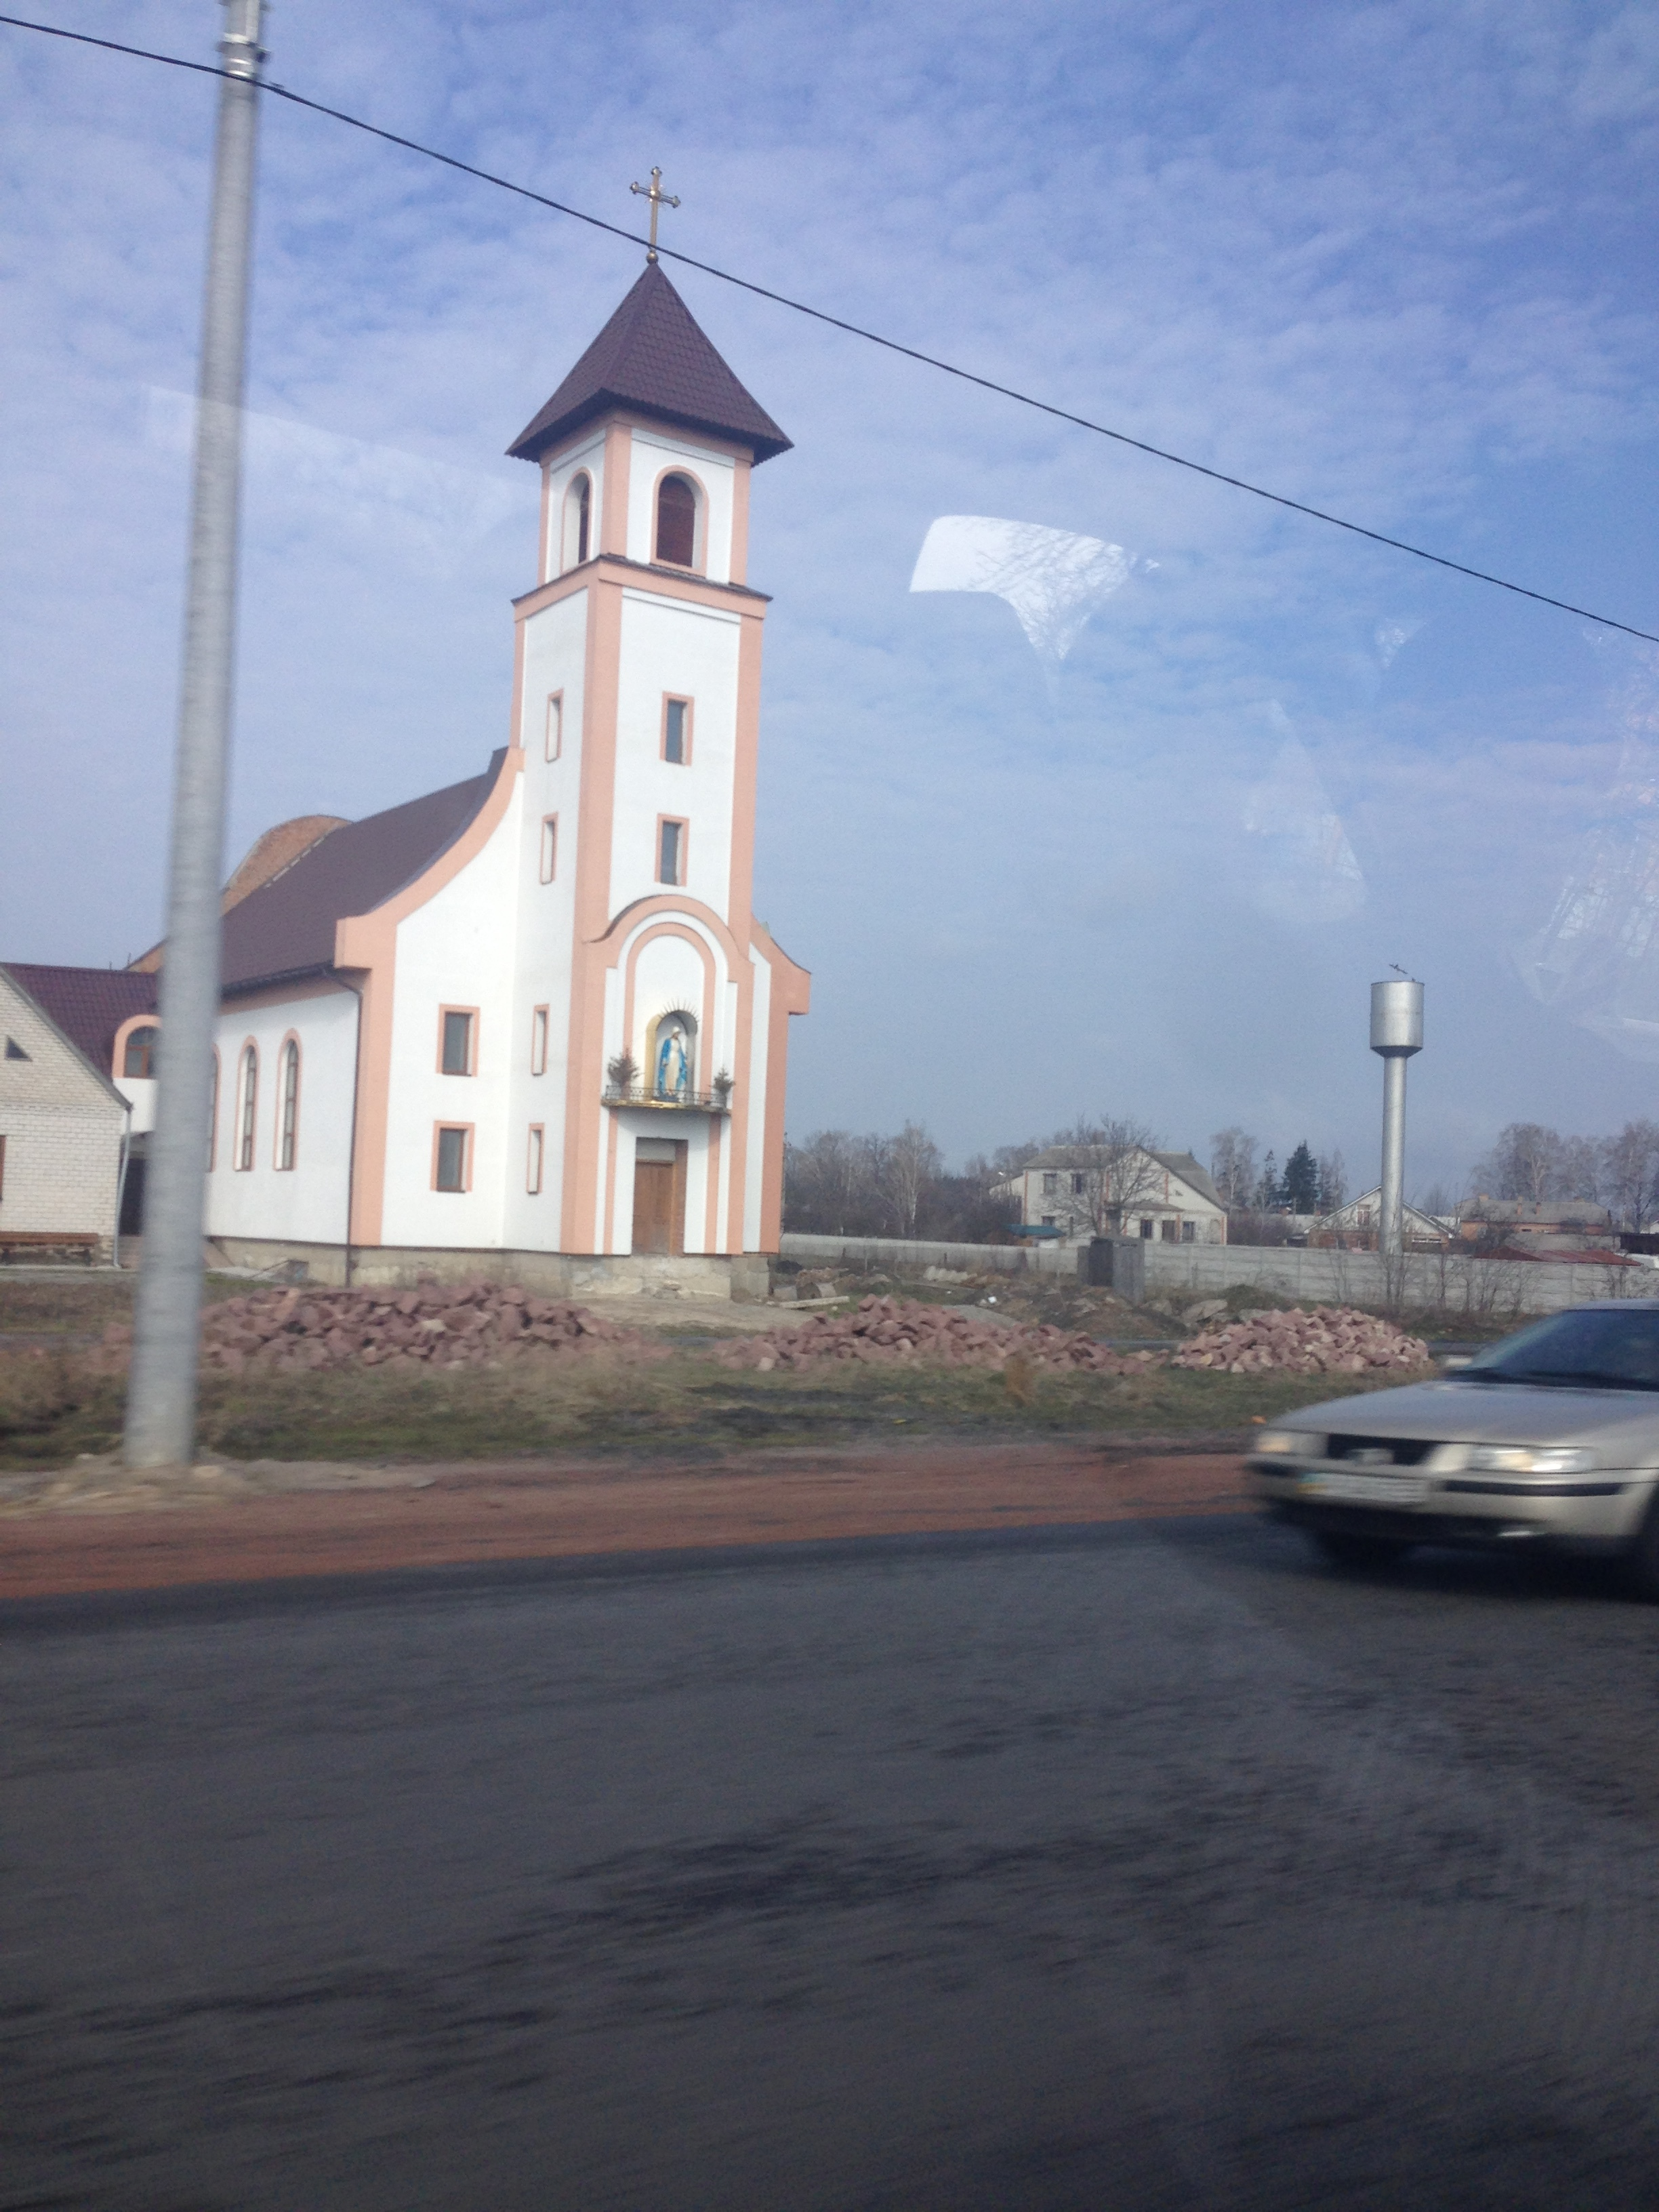 One of the pretty Polish churches we passed.